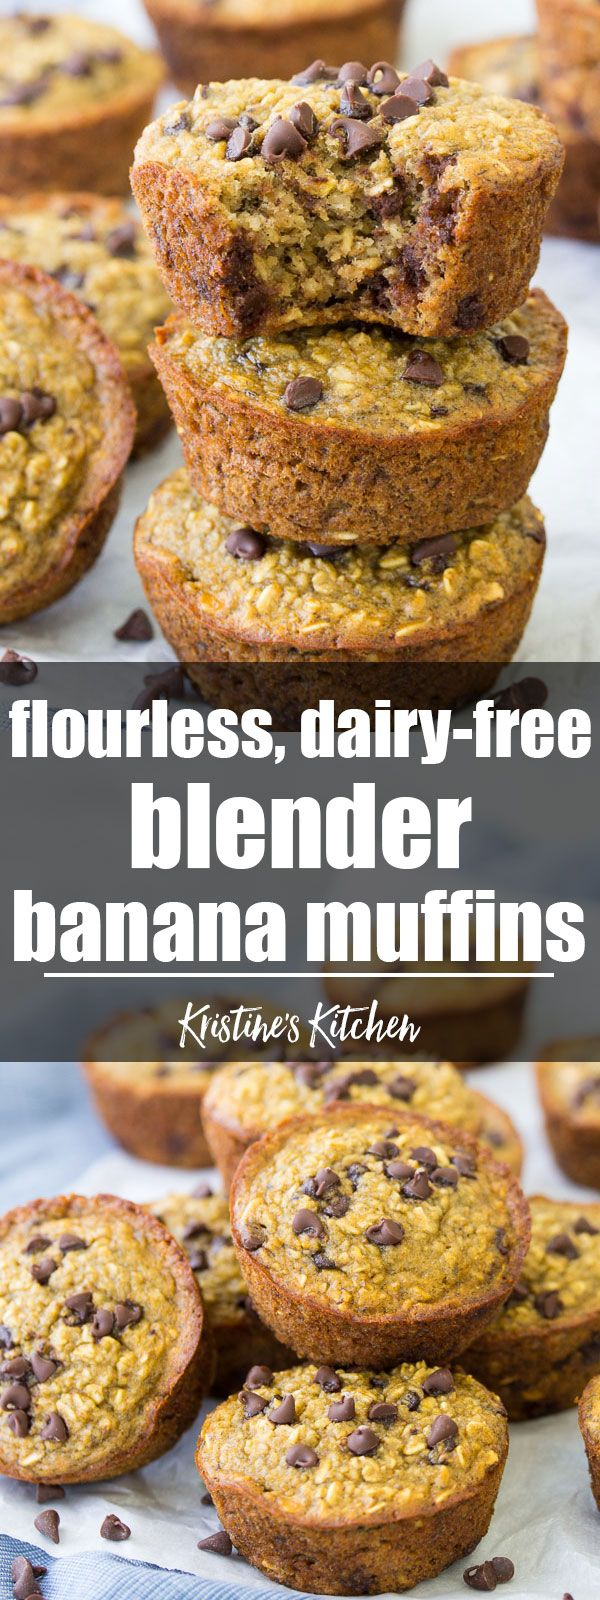 These flourless Healthy Blender Banana Muffins are dairy-free and gluten-free. They are quick and easy to make in your blender! These healthy muffins freeze well for meal prep breakfasts and snacks! #muffins #blender #blenderrecipes #banana #chocolatechip #oats